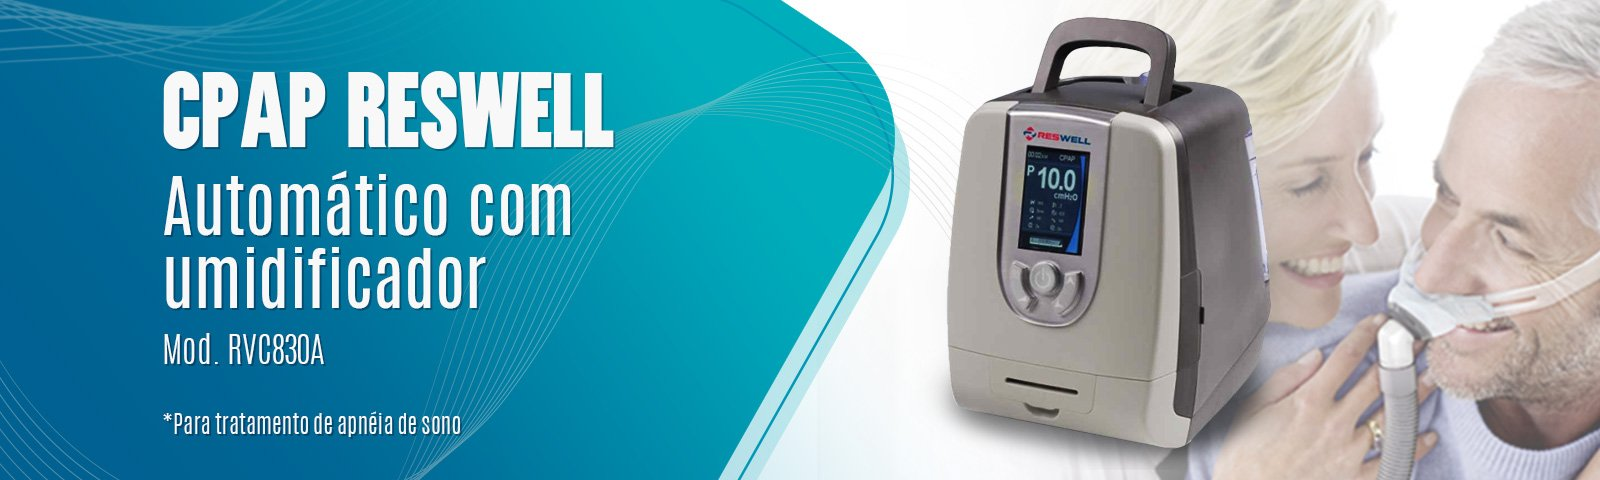 Cpap Reswell